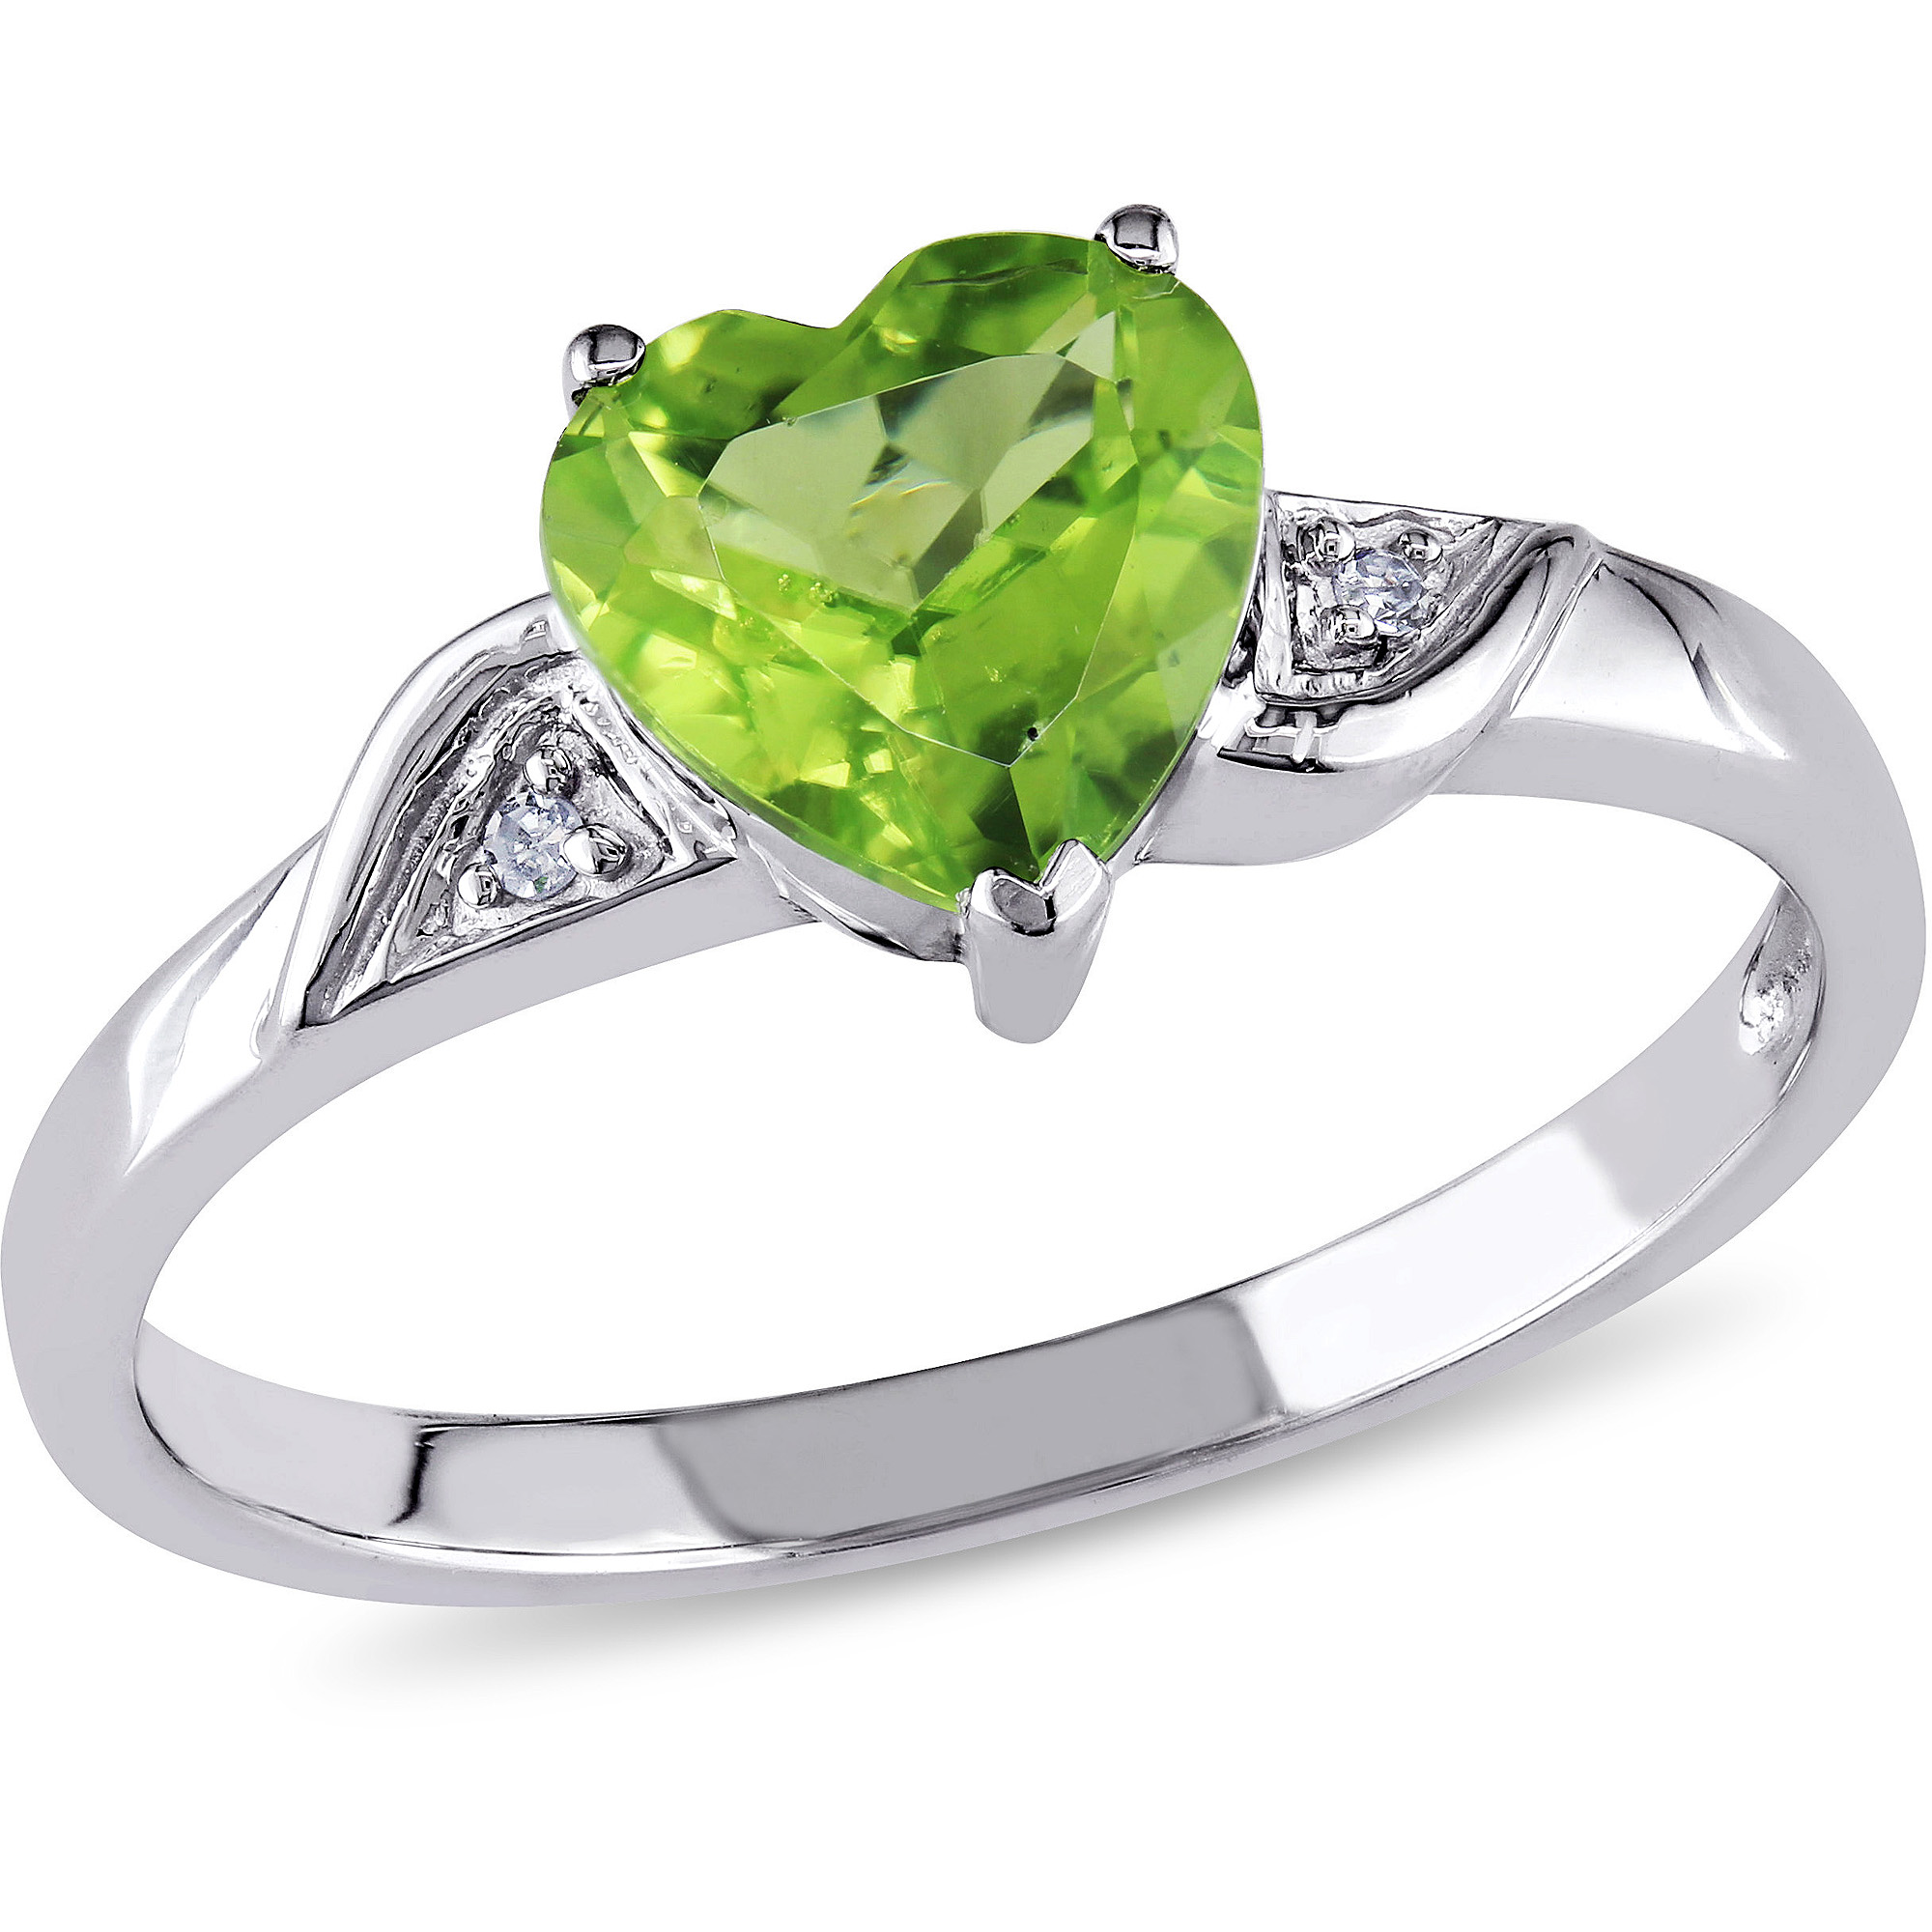 1-1/3 Carat T.G.W. Peridot and Diamond-Accent 10kt White Gold Heart Ring